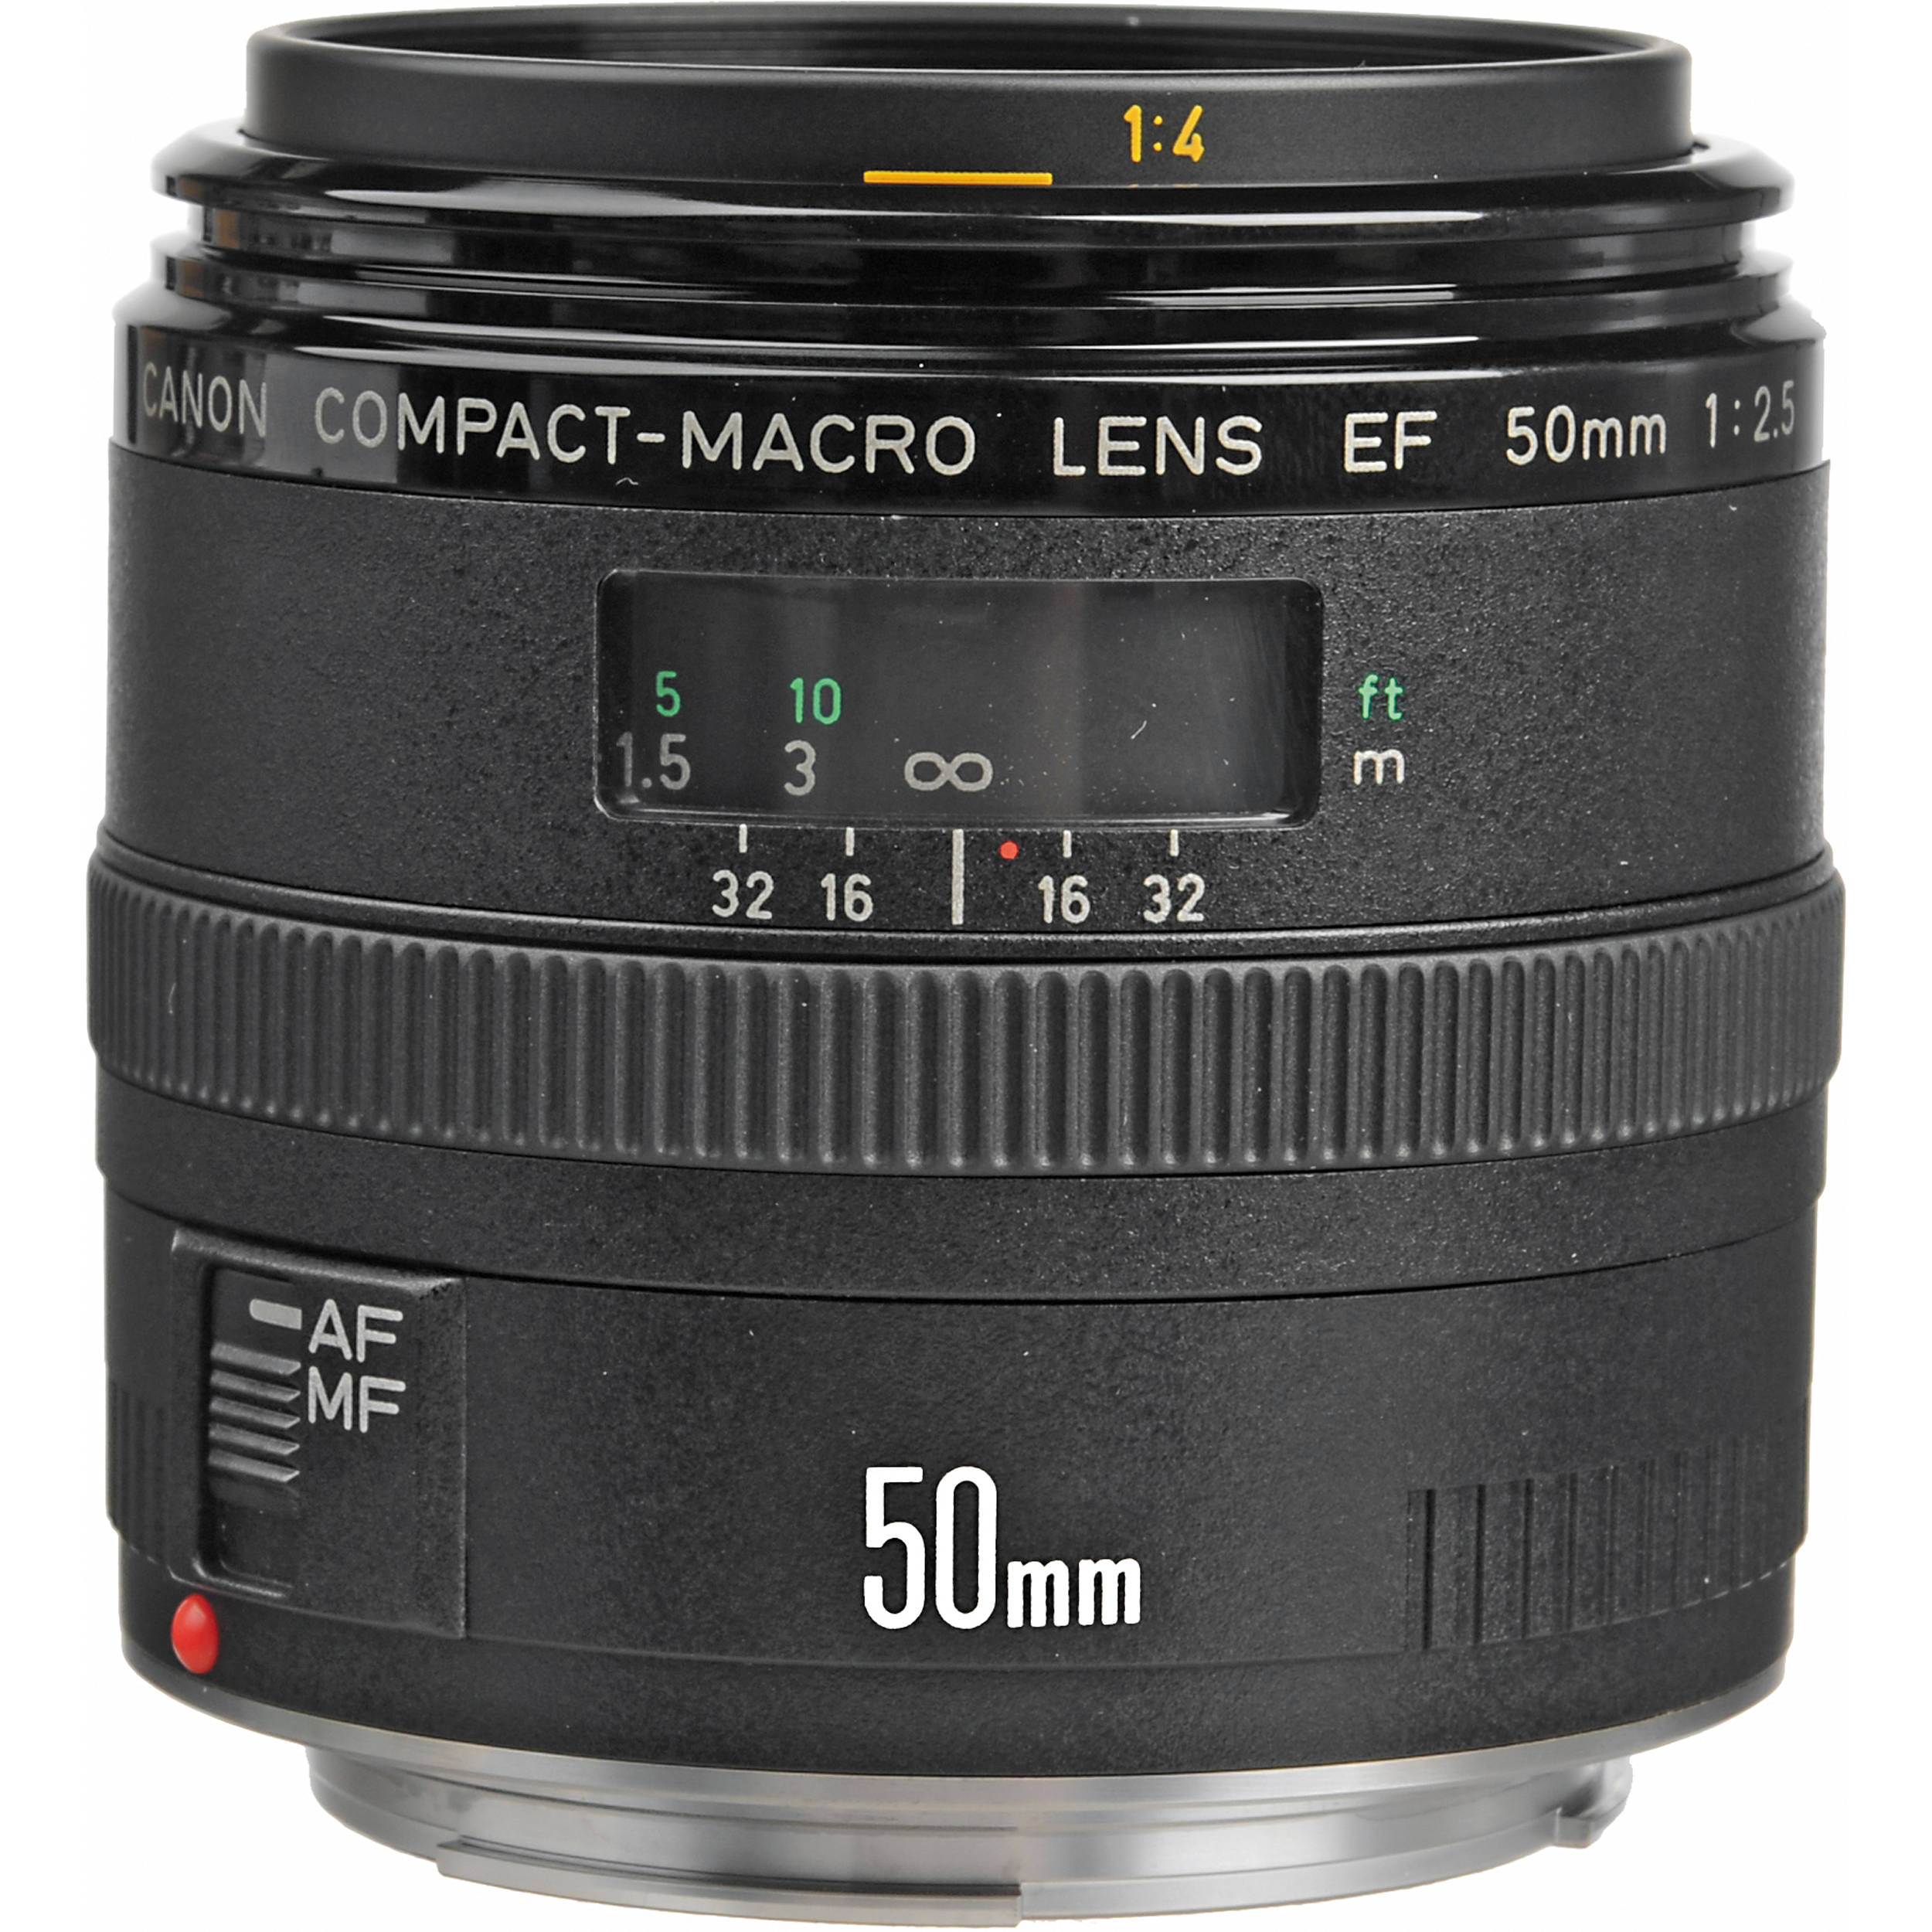 Canon EF 100mm f/2.8 Macro USM Lens 4657A006 B&H Photo Video